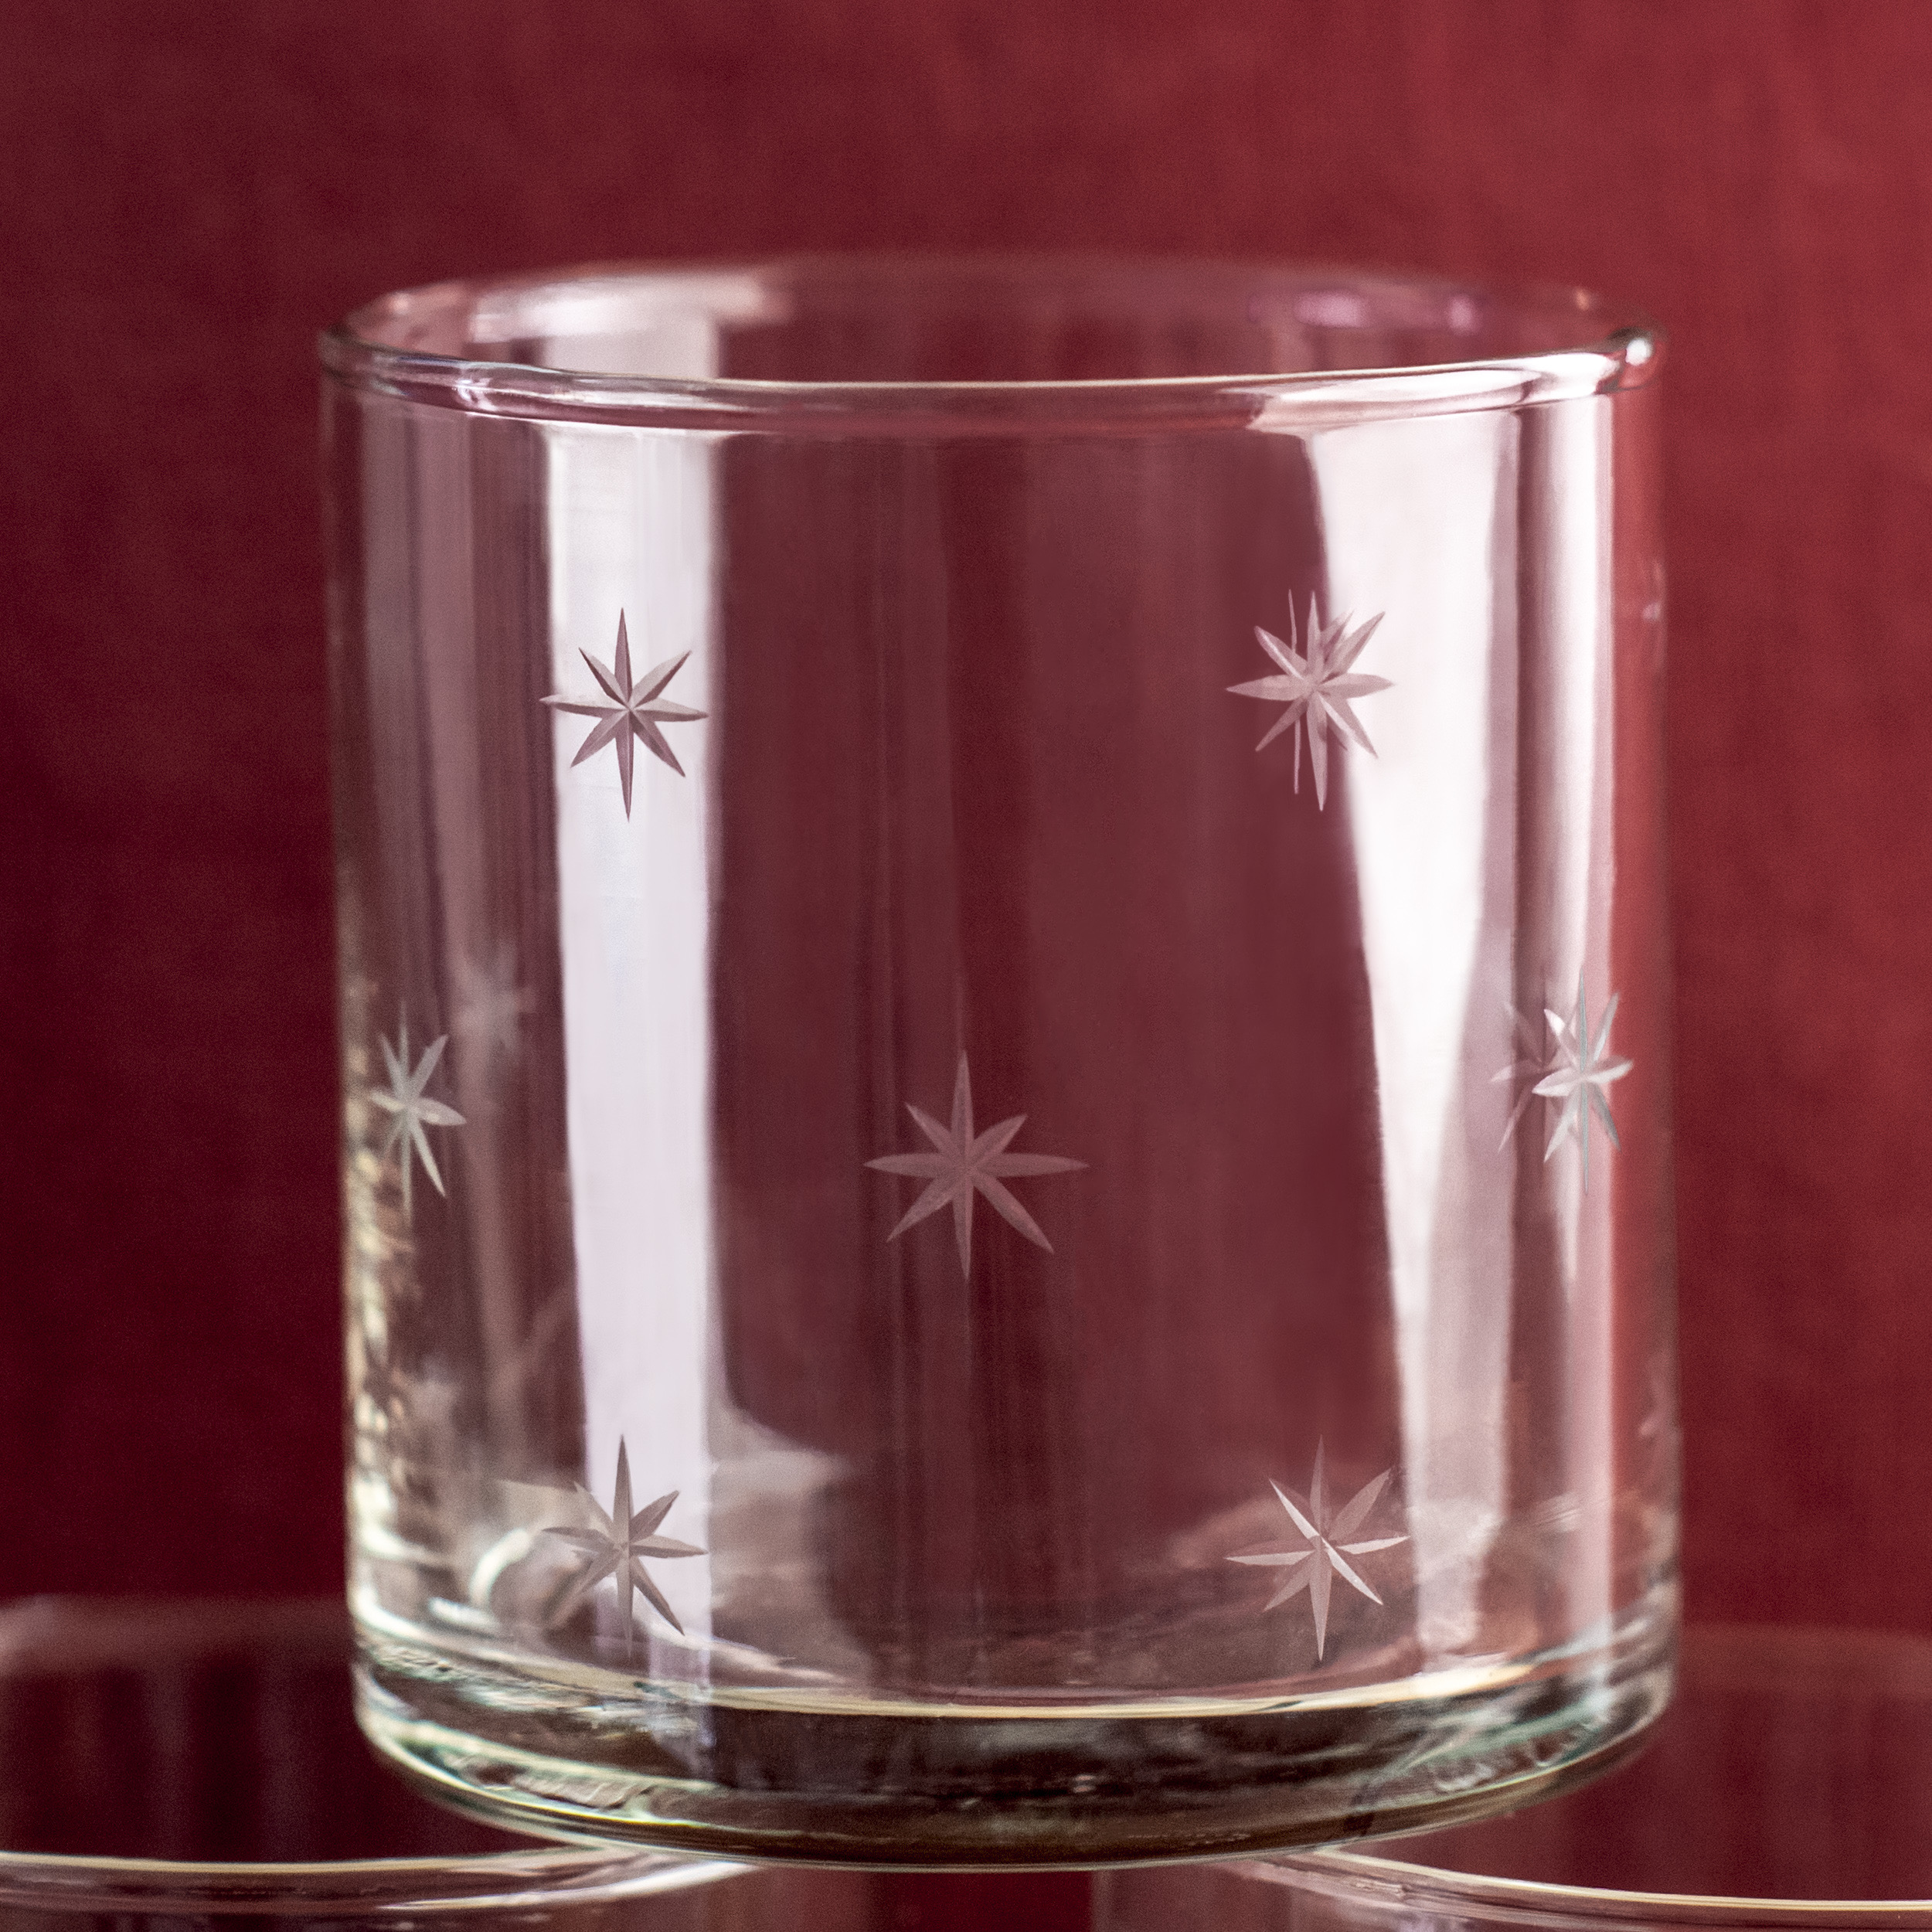 Etched Stars Tumbler